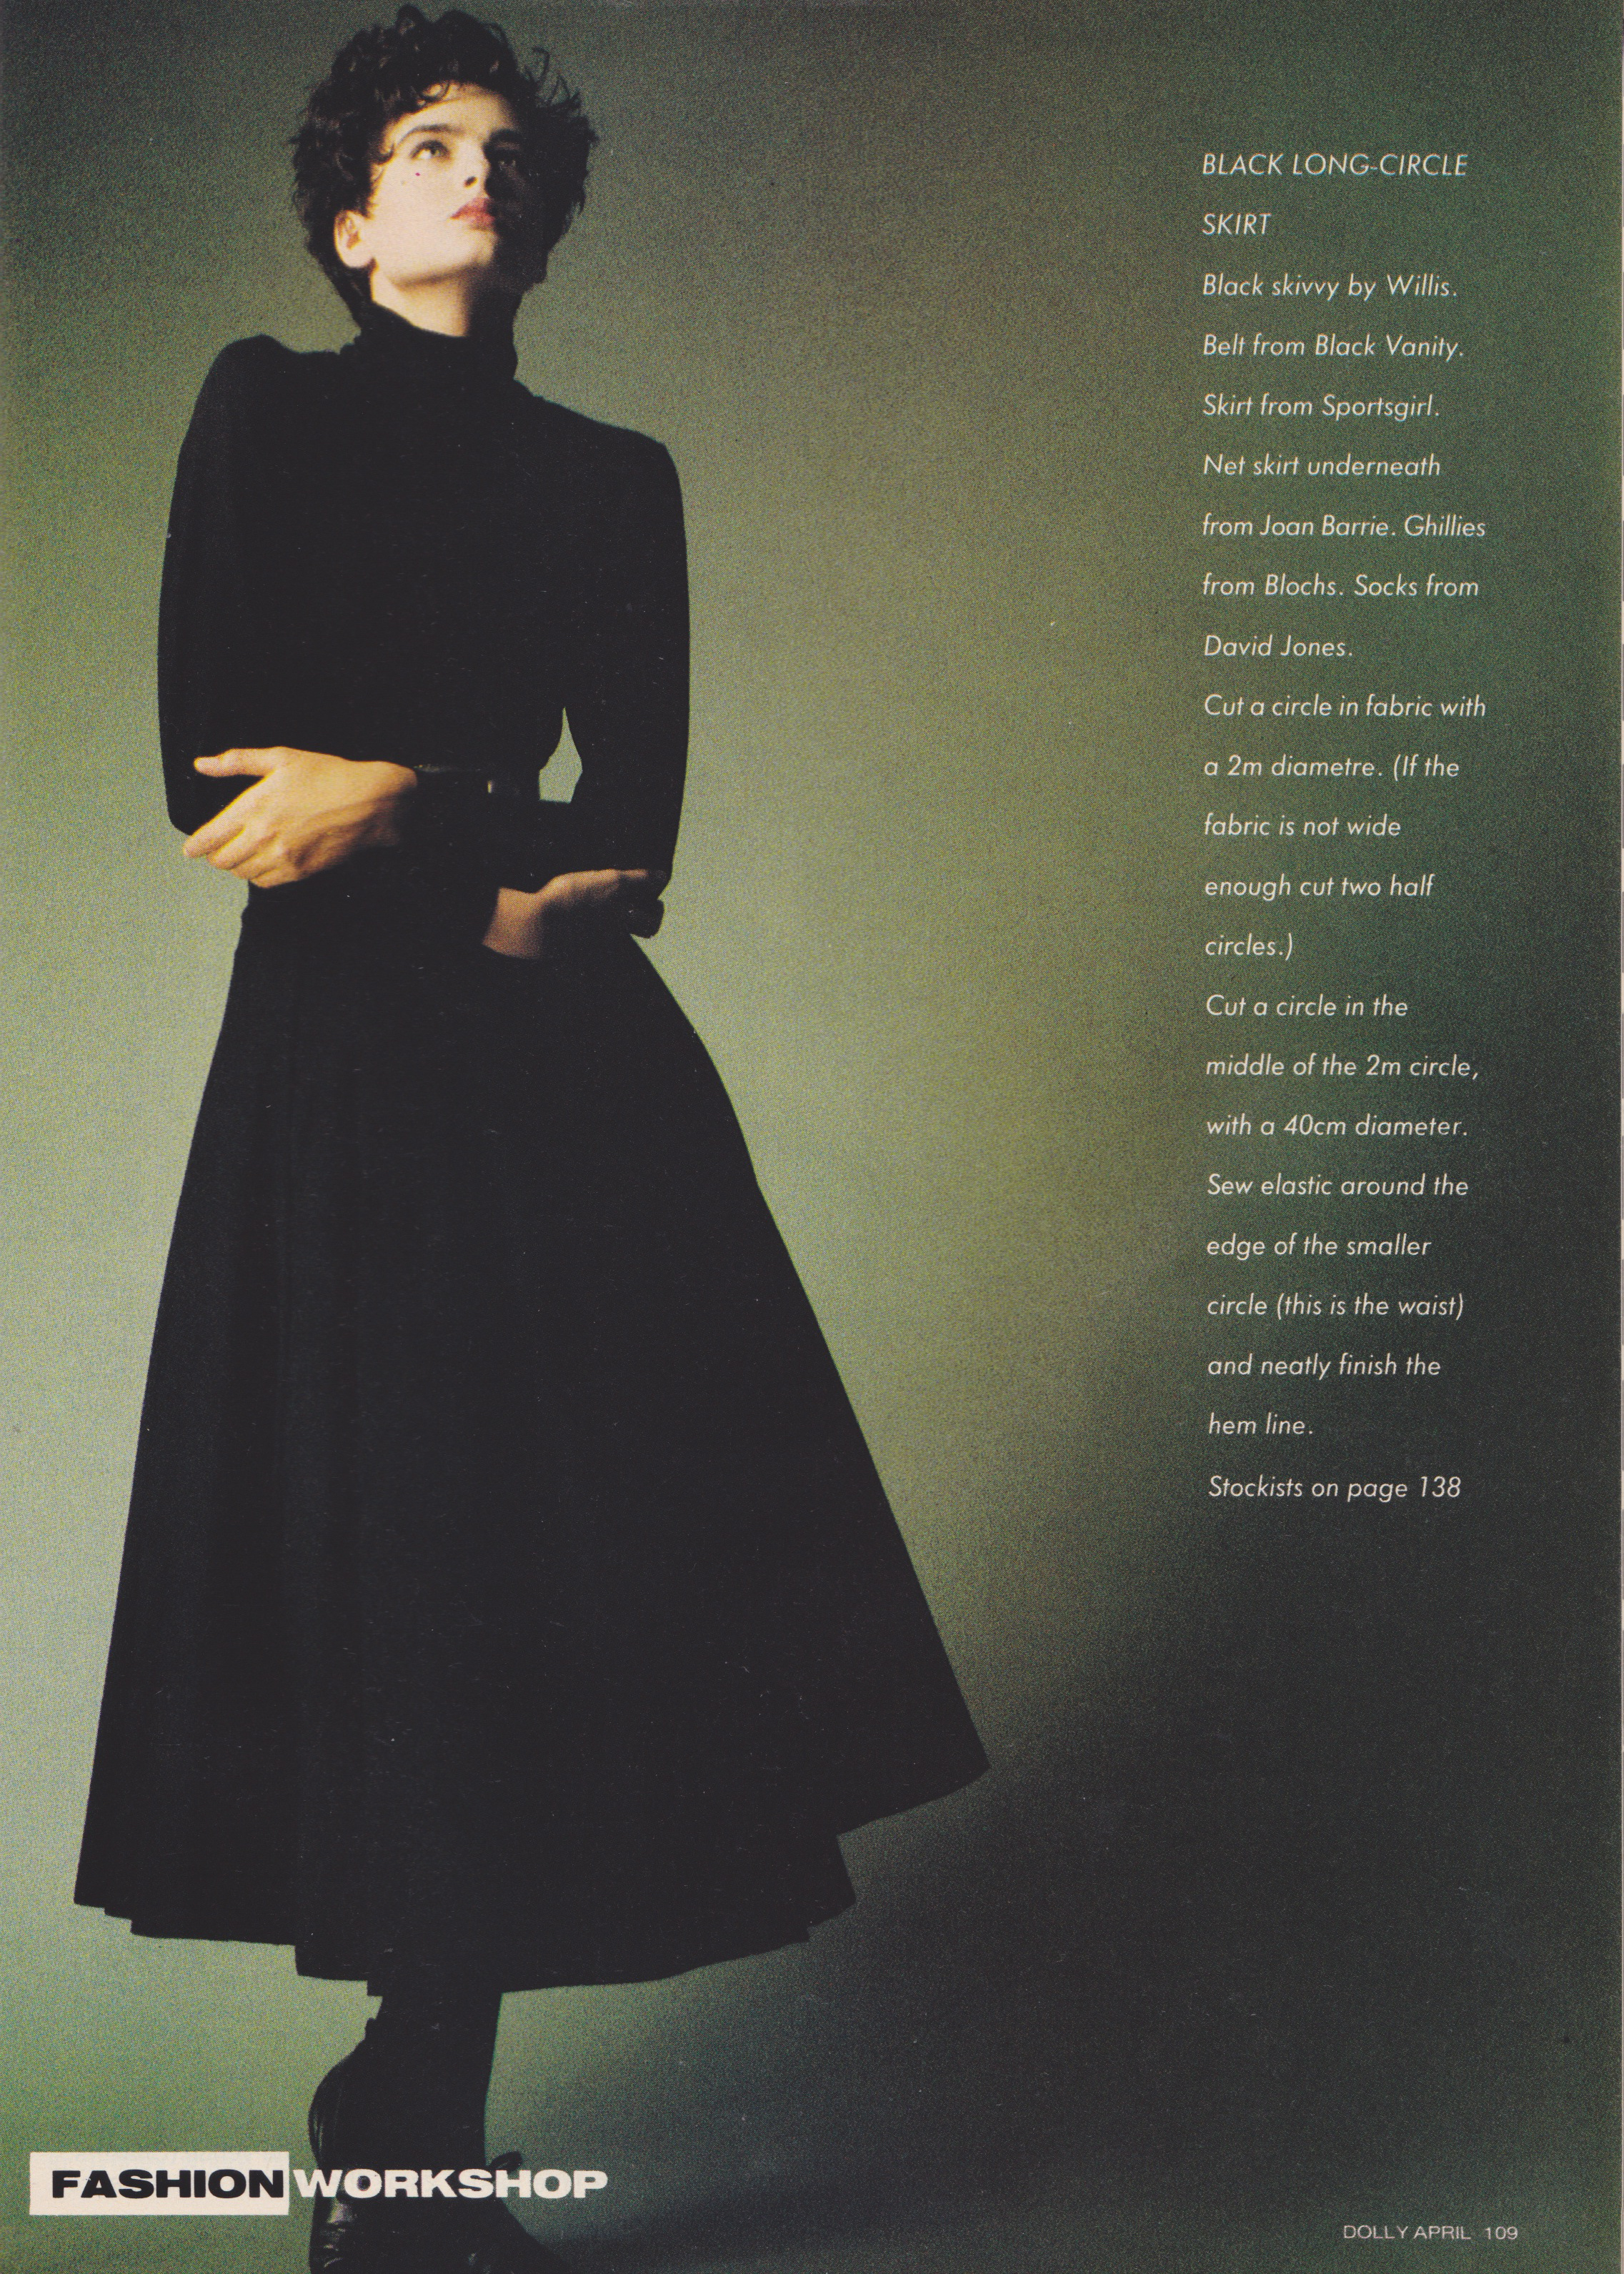 Dolly April 1987 | The Shape Of Skirts To Come (Belinda Riding) 06.jpeg